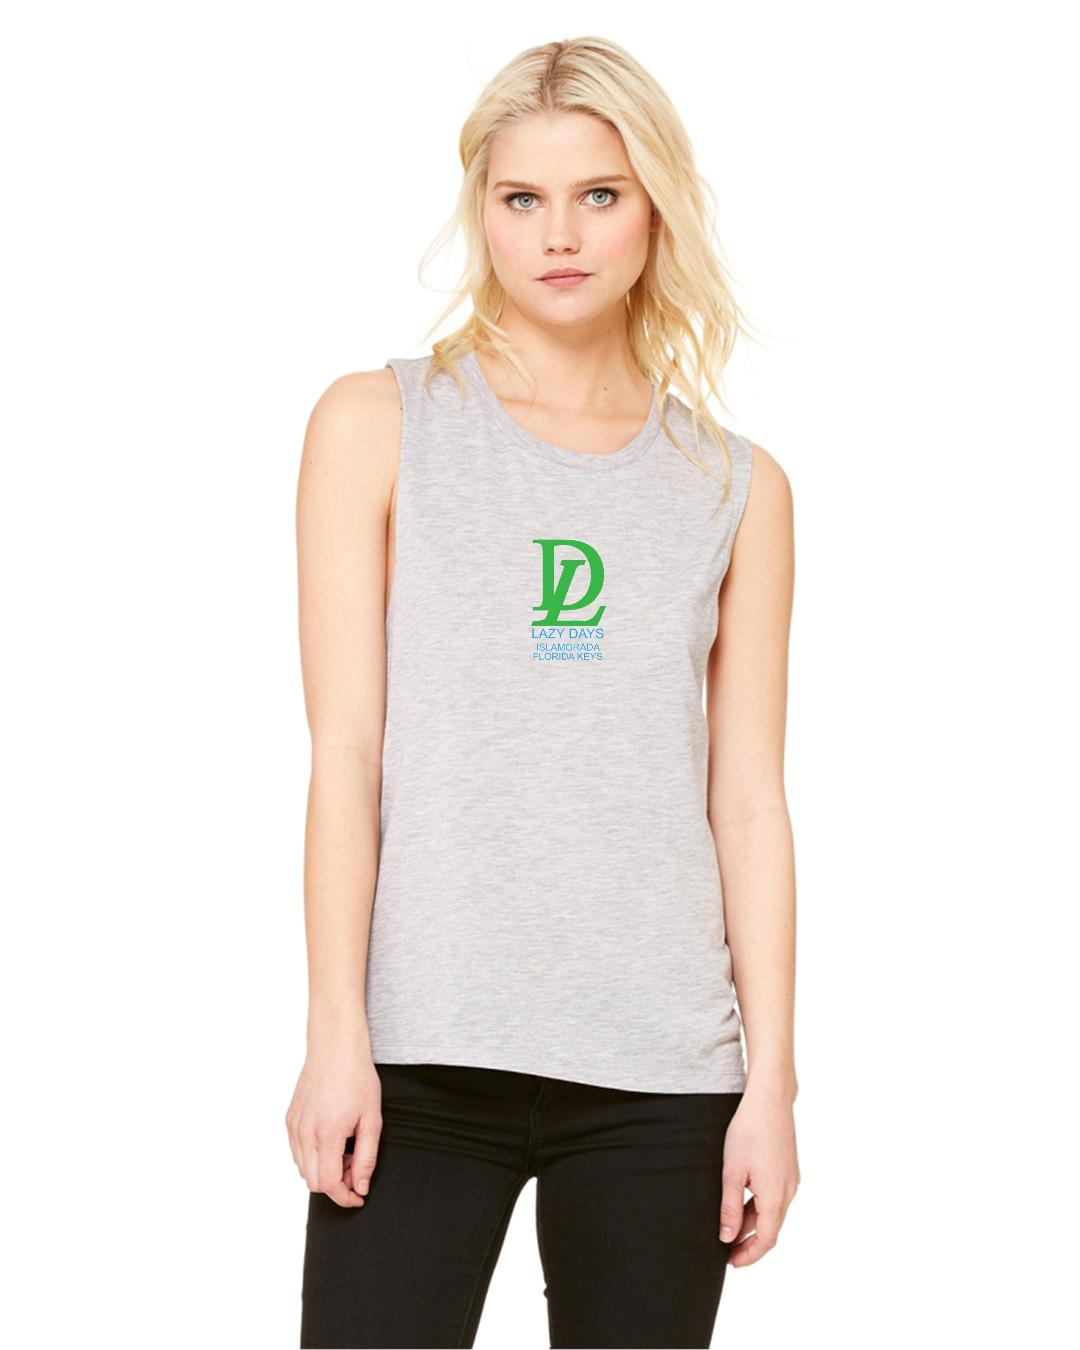 LD-muscle tank front